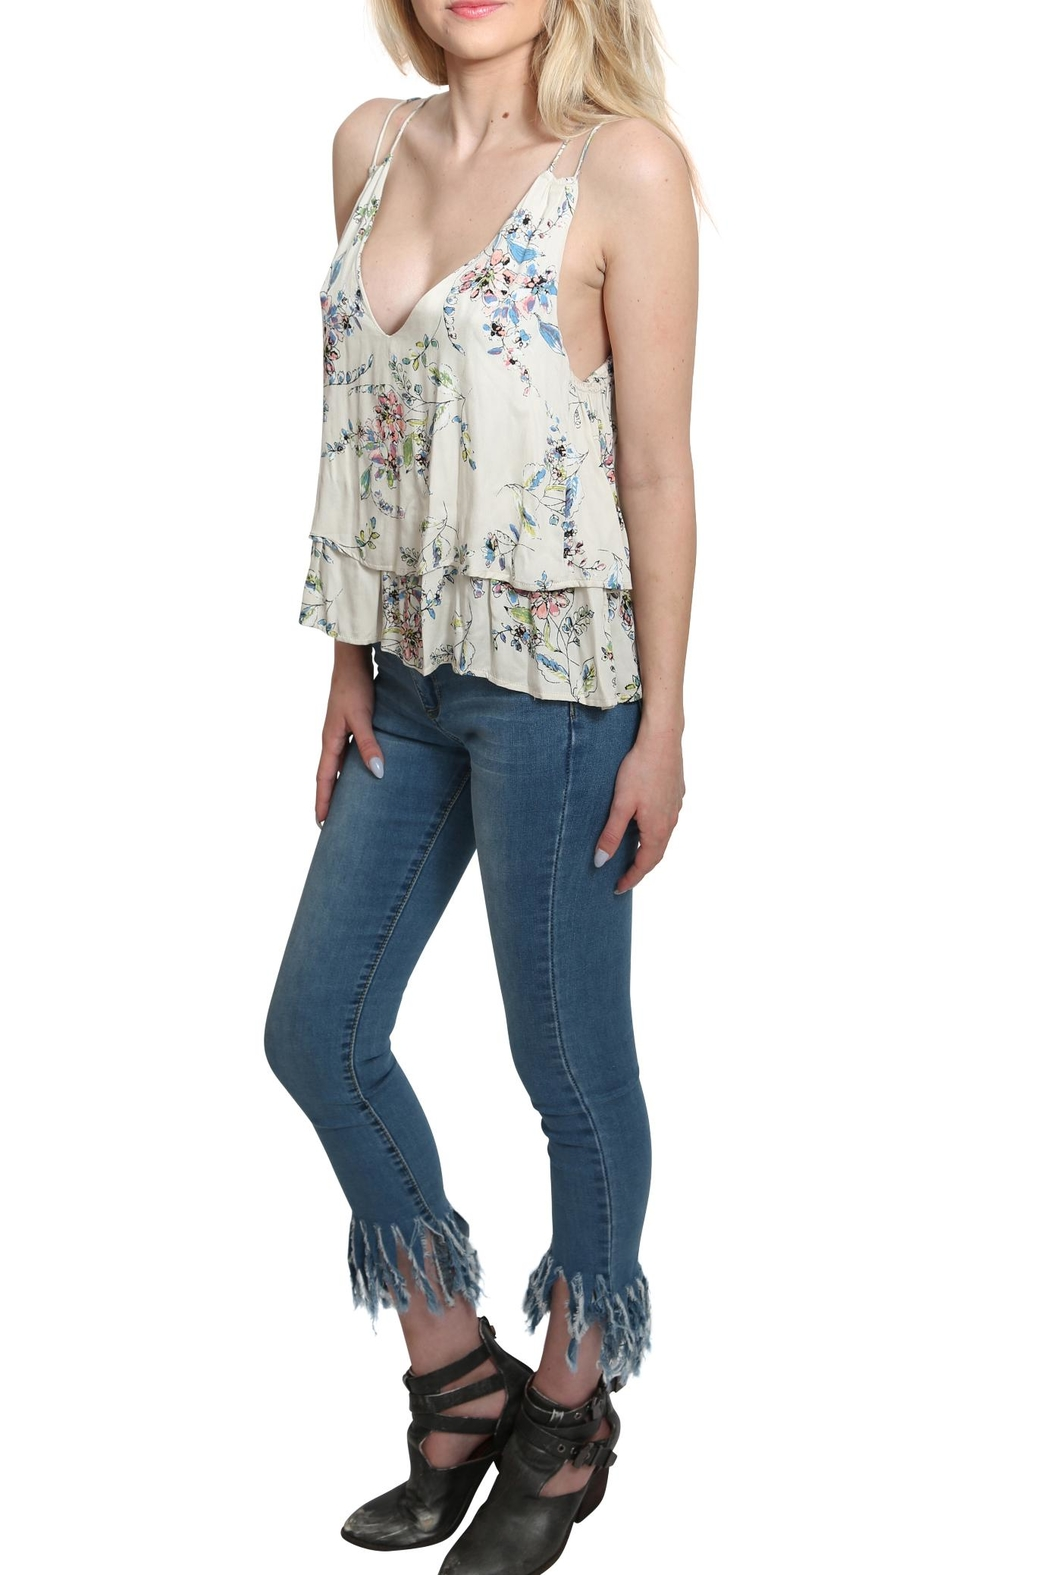 Lovestitch Printed Floral Tank Top - Front Full Image